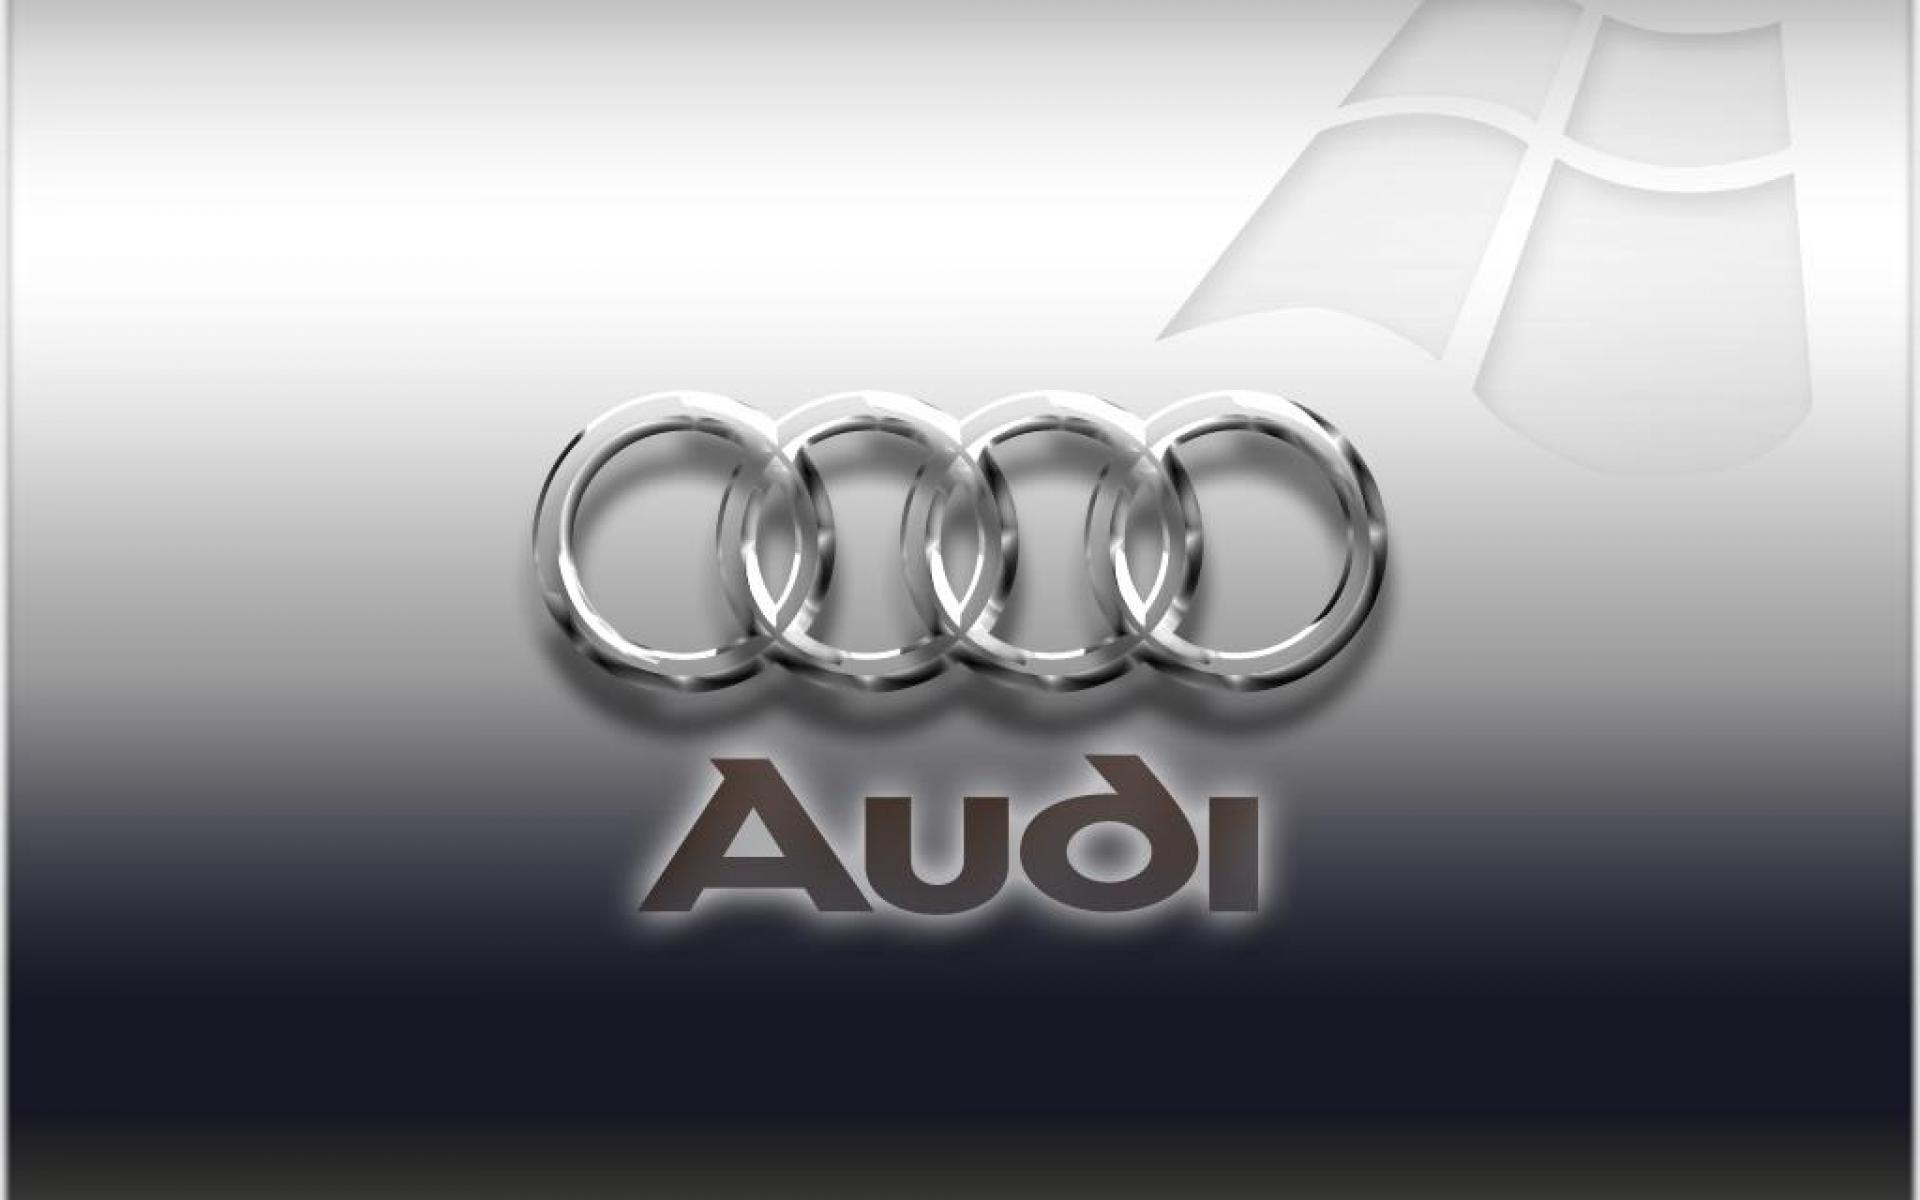 Audi A6 Wallpaper Hd Audi Logo Wallpaper Hd Pixelstalk Net